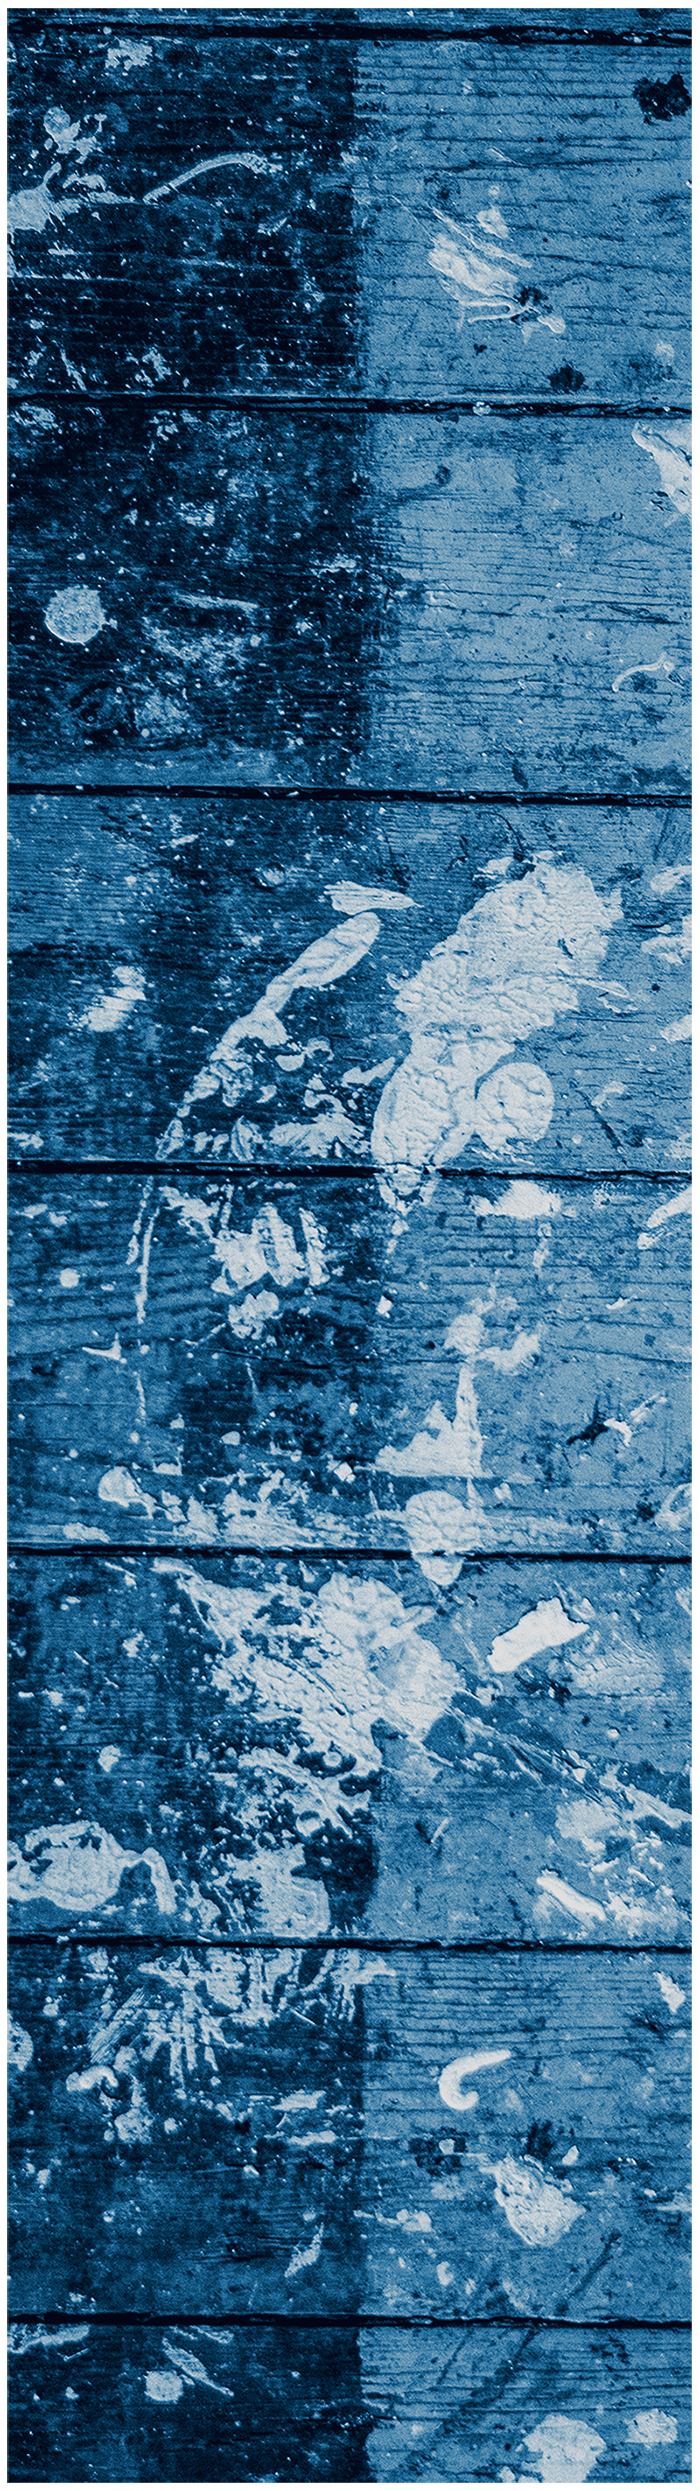 painted_wood_1894b83d-7849-40ee-b2b6-d0096be49e6a.png?5906011679603795649